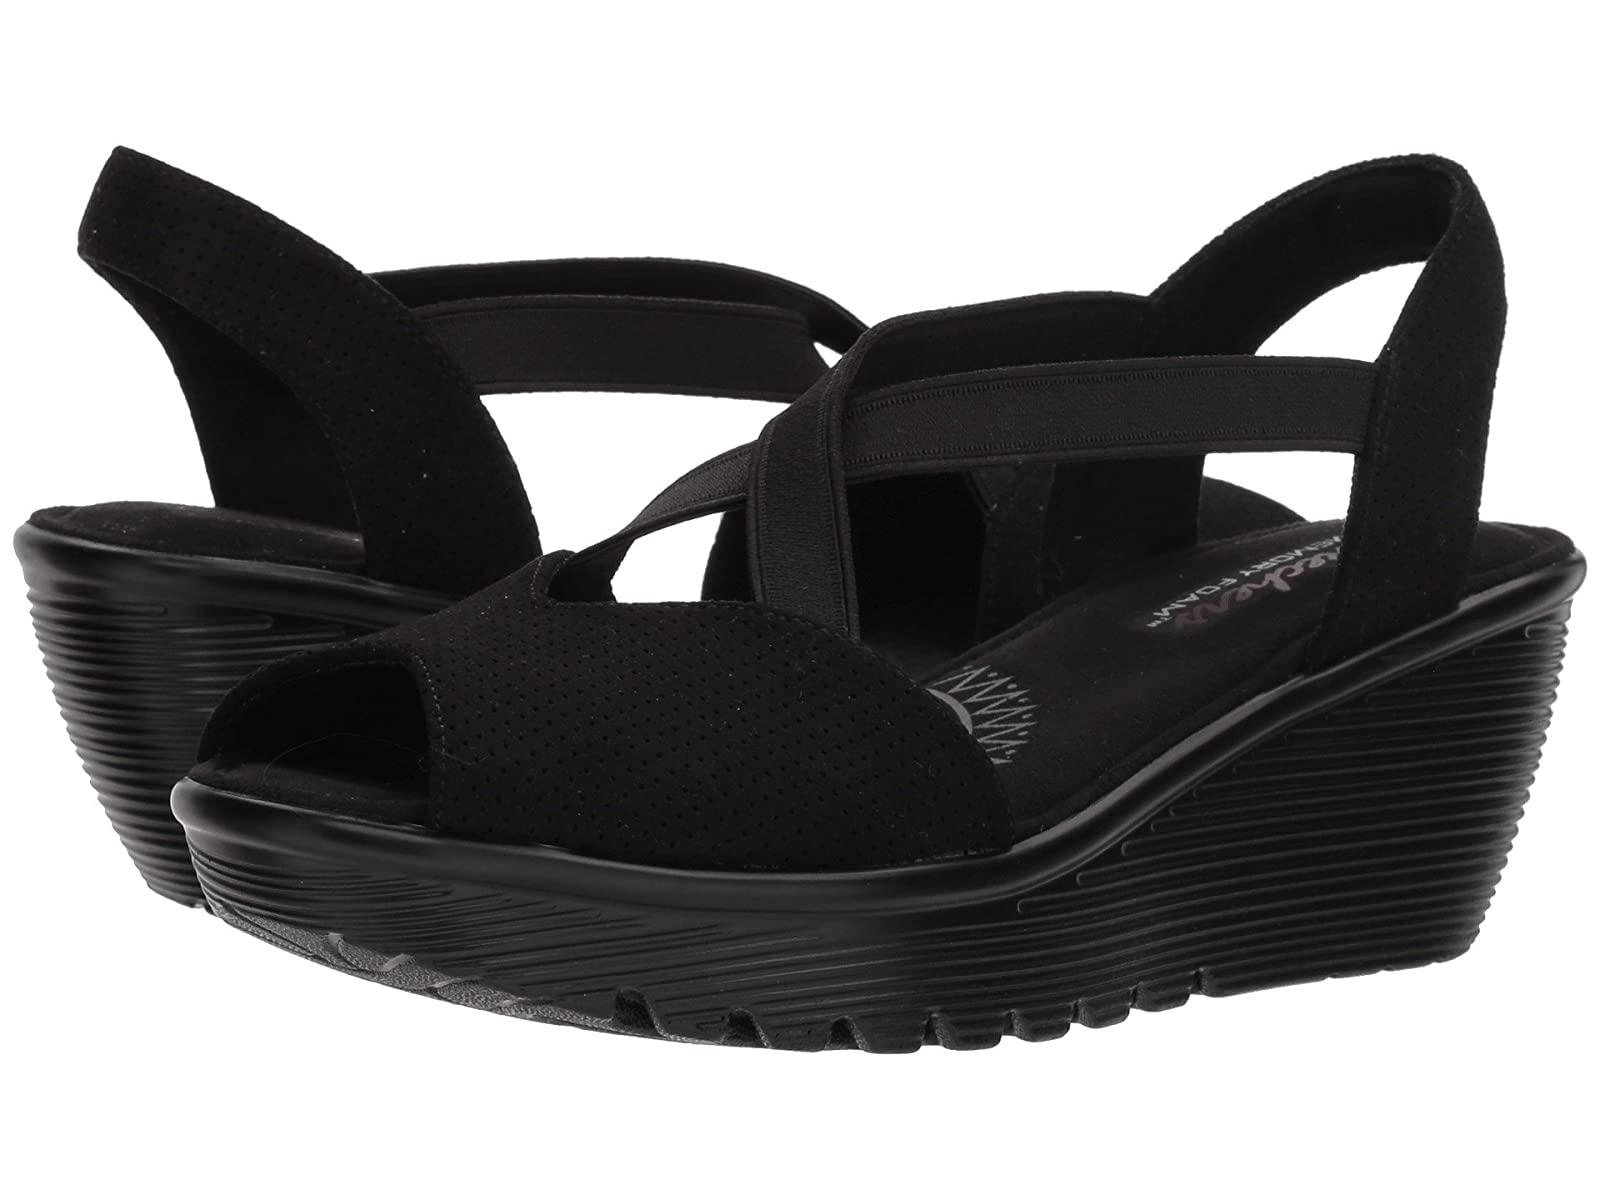 SKECHERS Parallel - PiazzaAtmospheric grades have affordable shoes